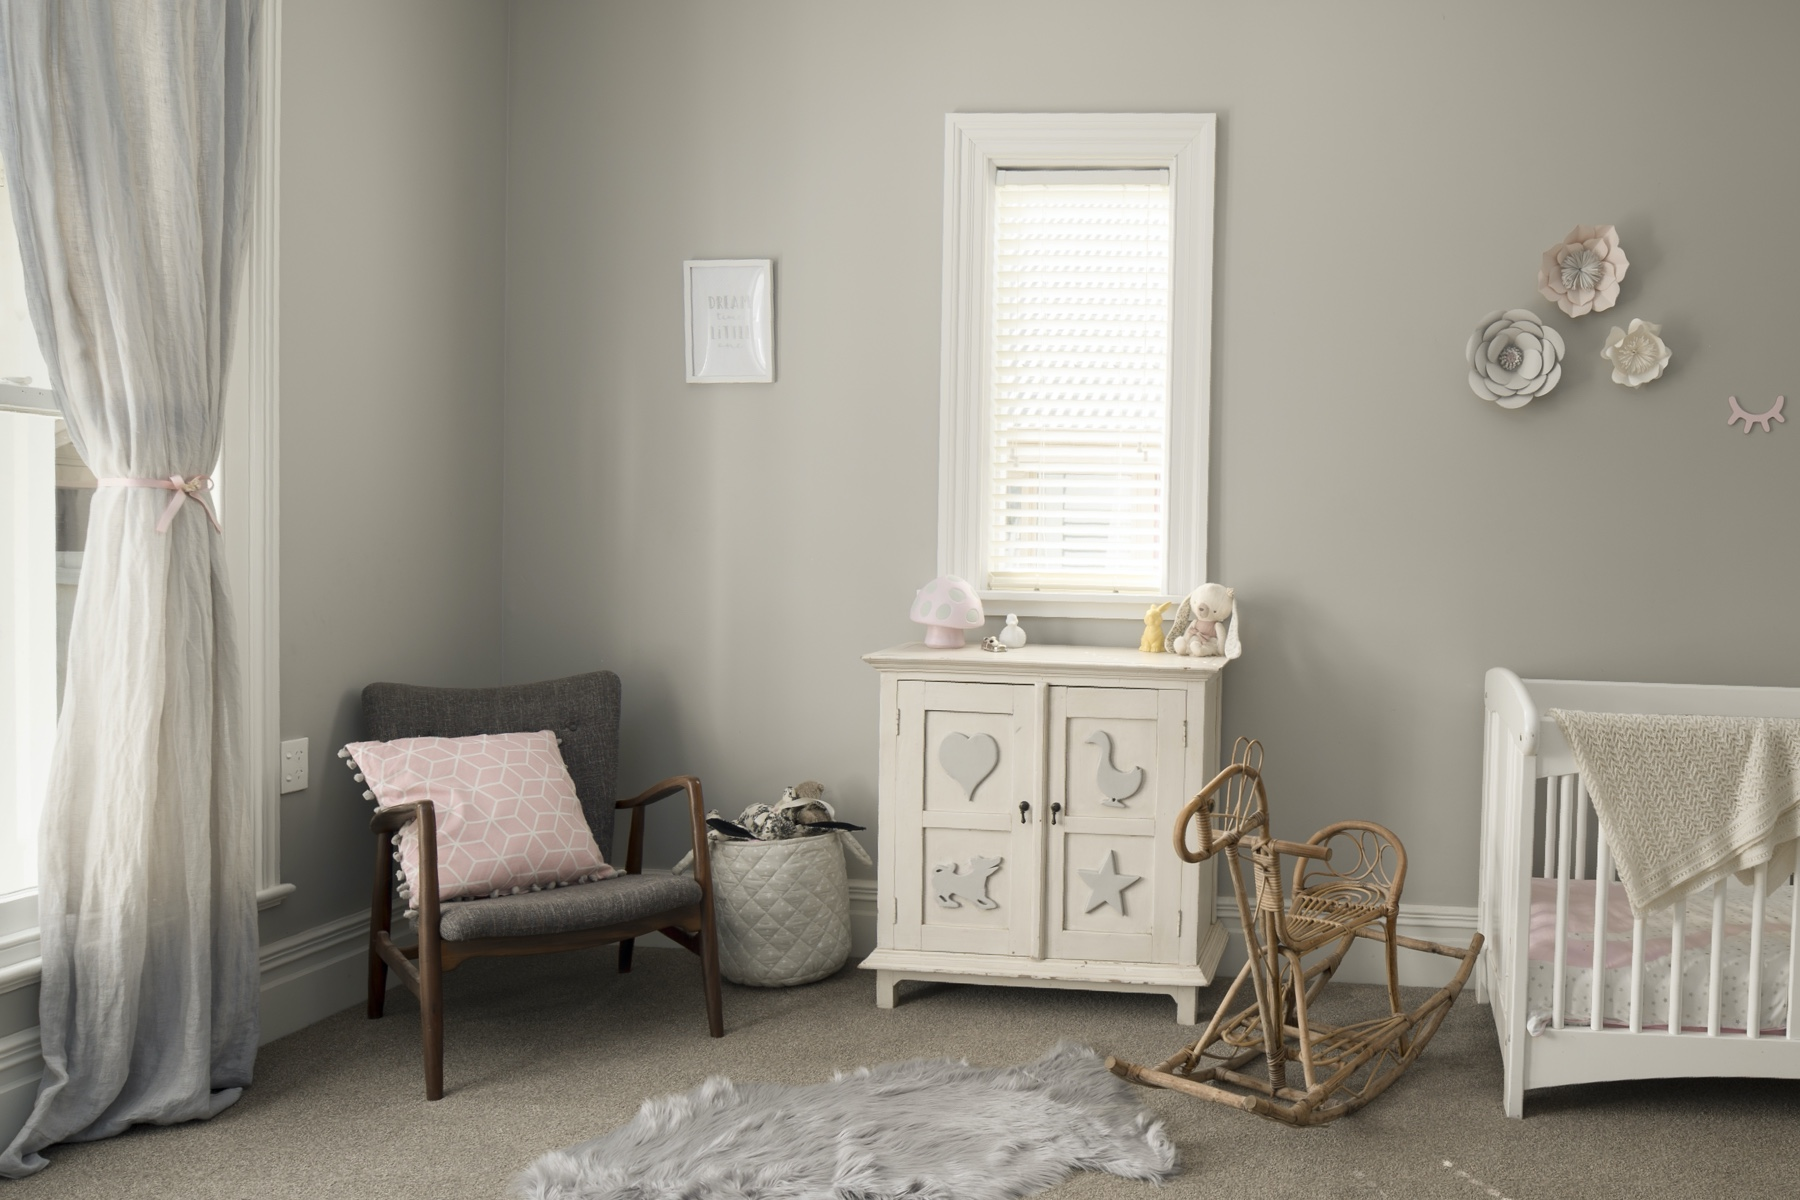 Photo of a nursery featuring a chair, changing table, and rocking horse.